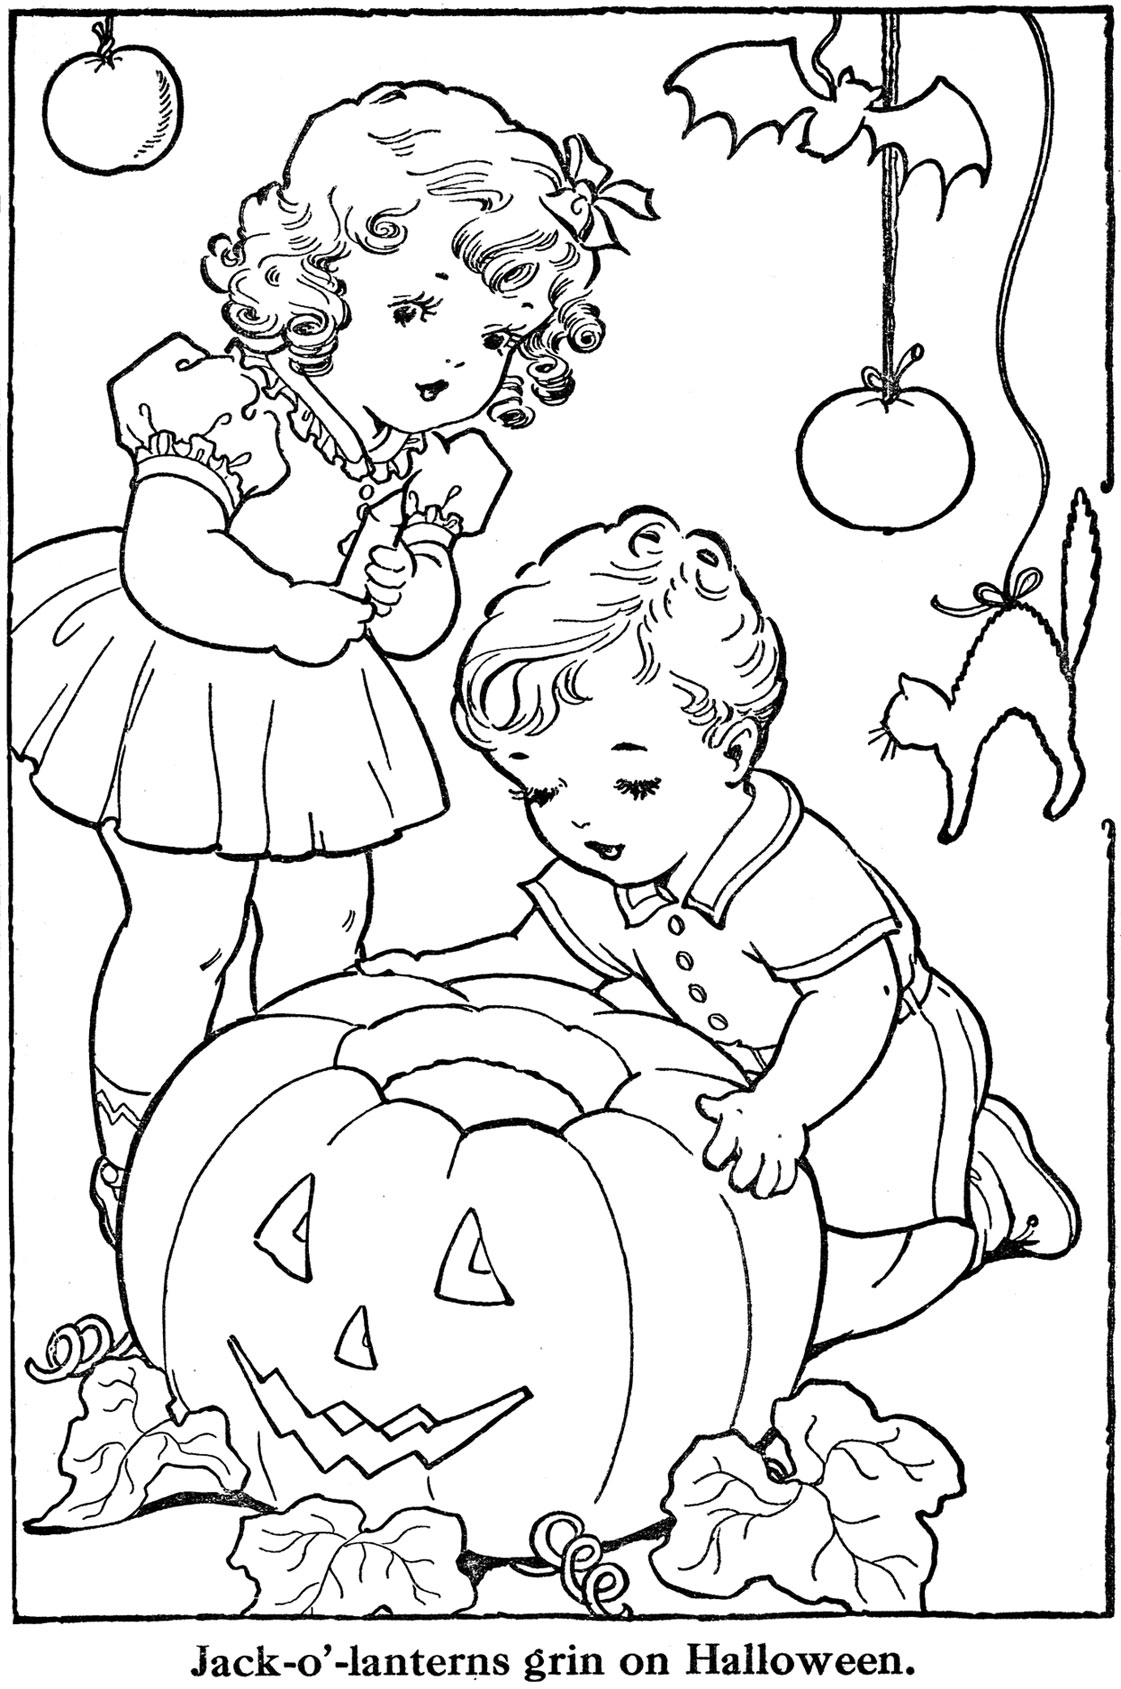 It's the Great Pumpkin Charlie Brown Coloring Pages Linus